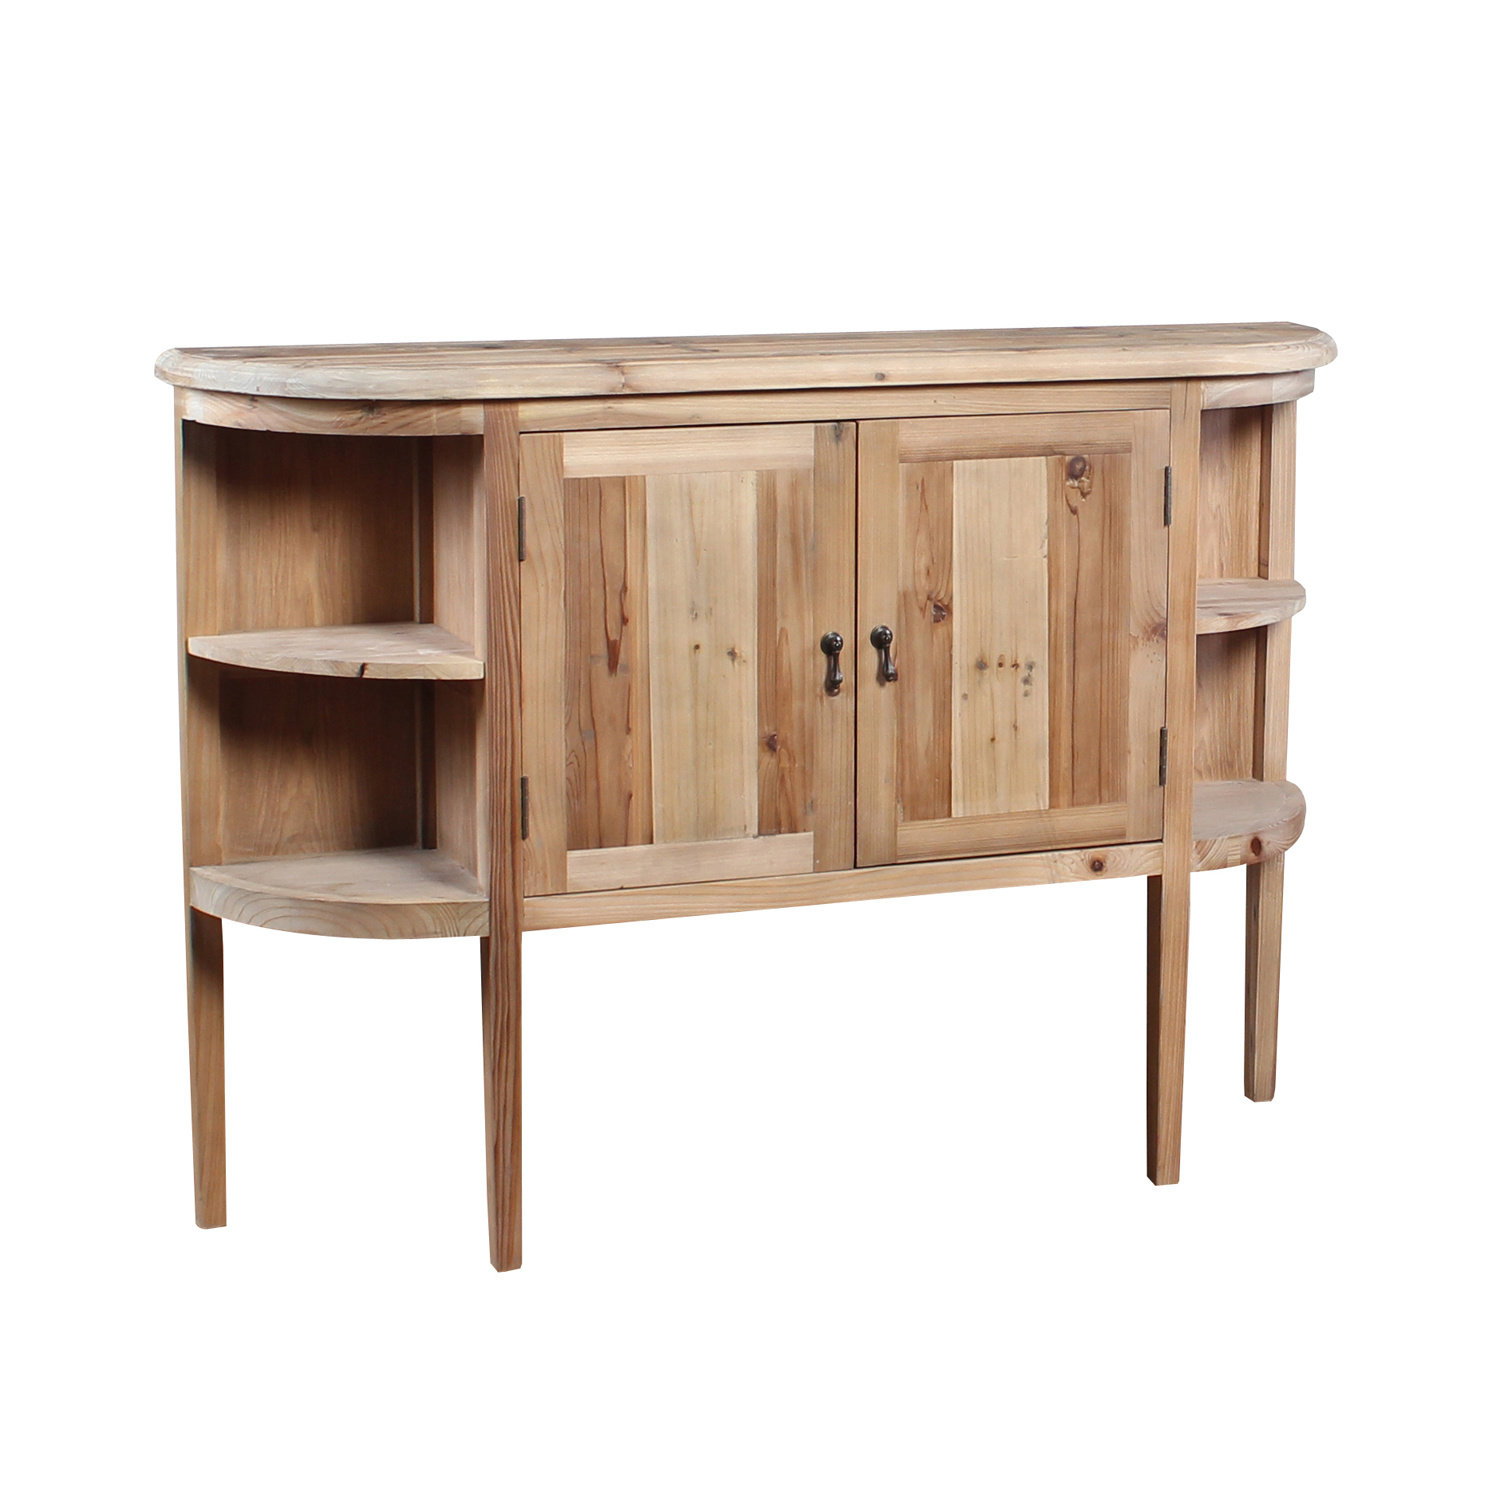 Picture of: China Tall Narrow 2 Door Dining Room Buffet Table Furniture Sideboard China Dining Room Buffet Table Dining Buffet Furniture